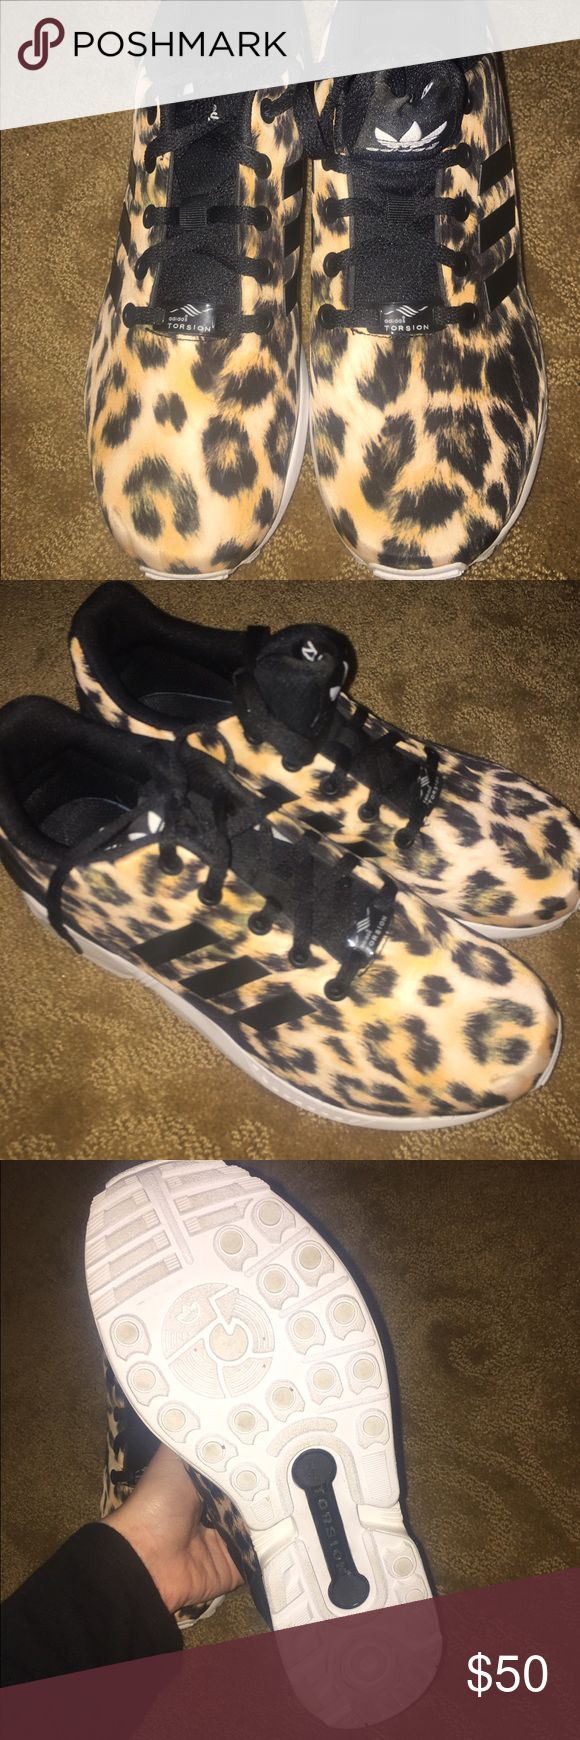 Adidas ZX FLUX Leopard worn twice! very eye catching. size 7. negotiate! Adidas Shoes Sneakers